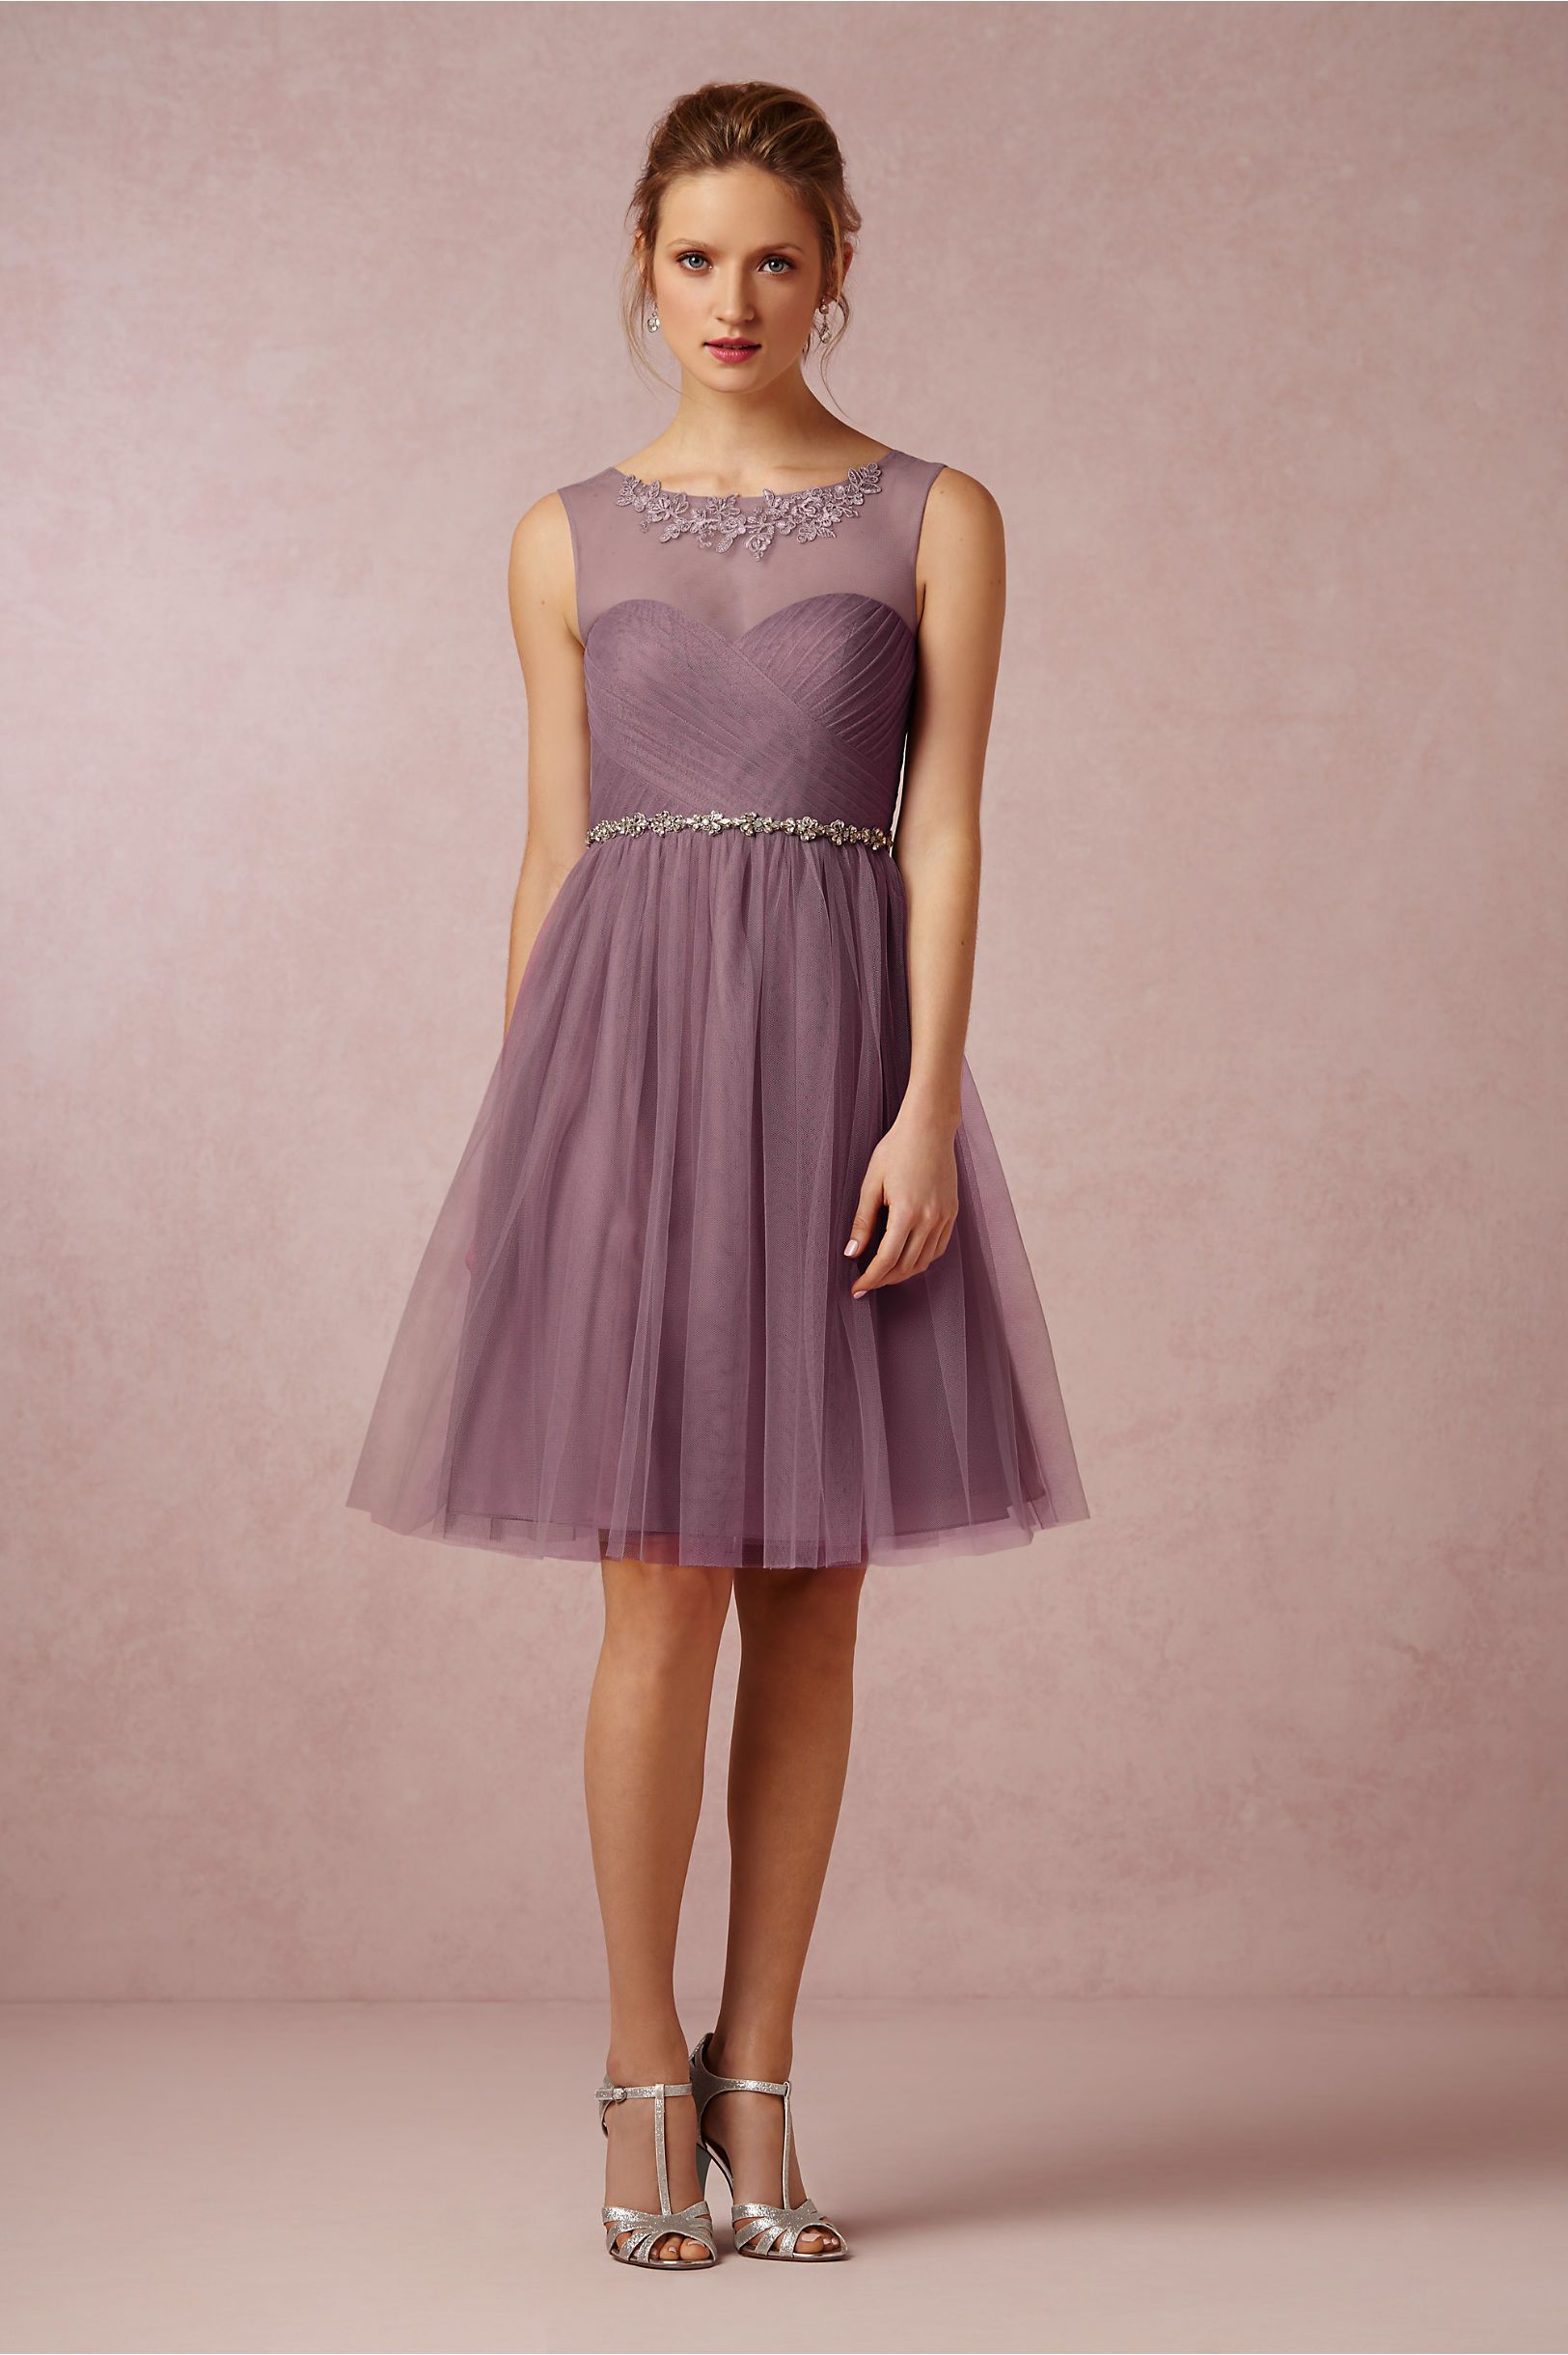 Chloe Dress from @BHLDN | Wedding | Pinterest | Vestiditos, Damas y Boda